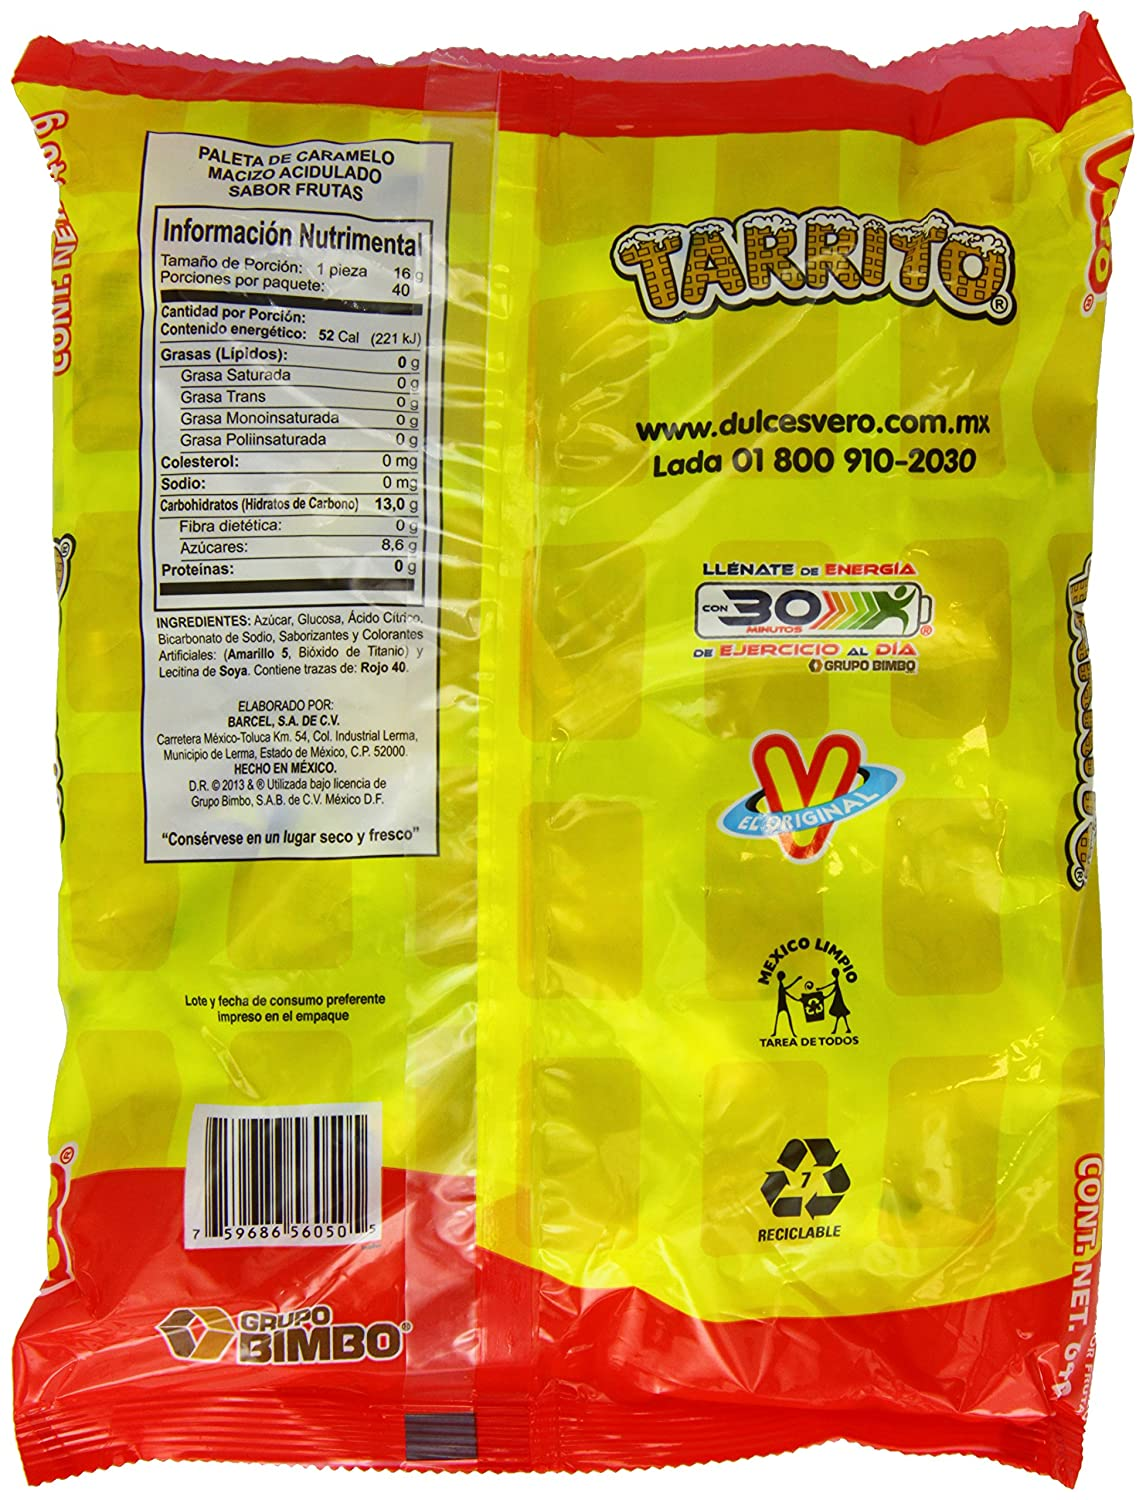 Amazon.com : Vero Mexican Candy Tarrito Fruit Flavored Lollipops - 40 Pieces : Suckers And Lollipops : Grocery & Gourmet Food